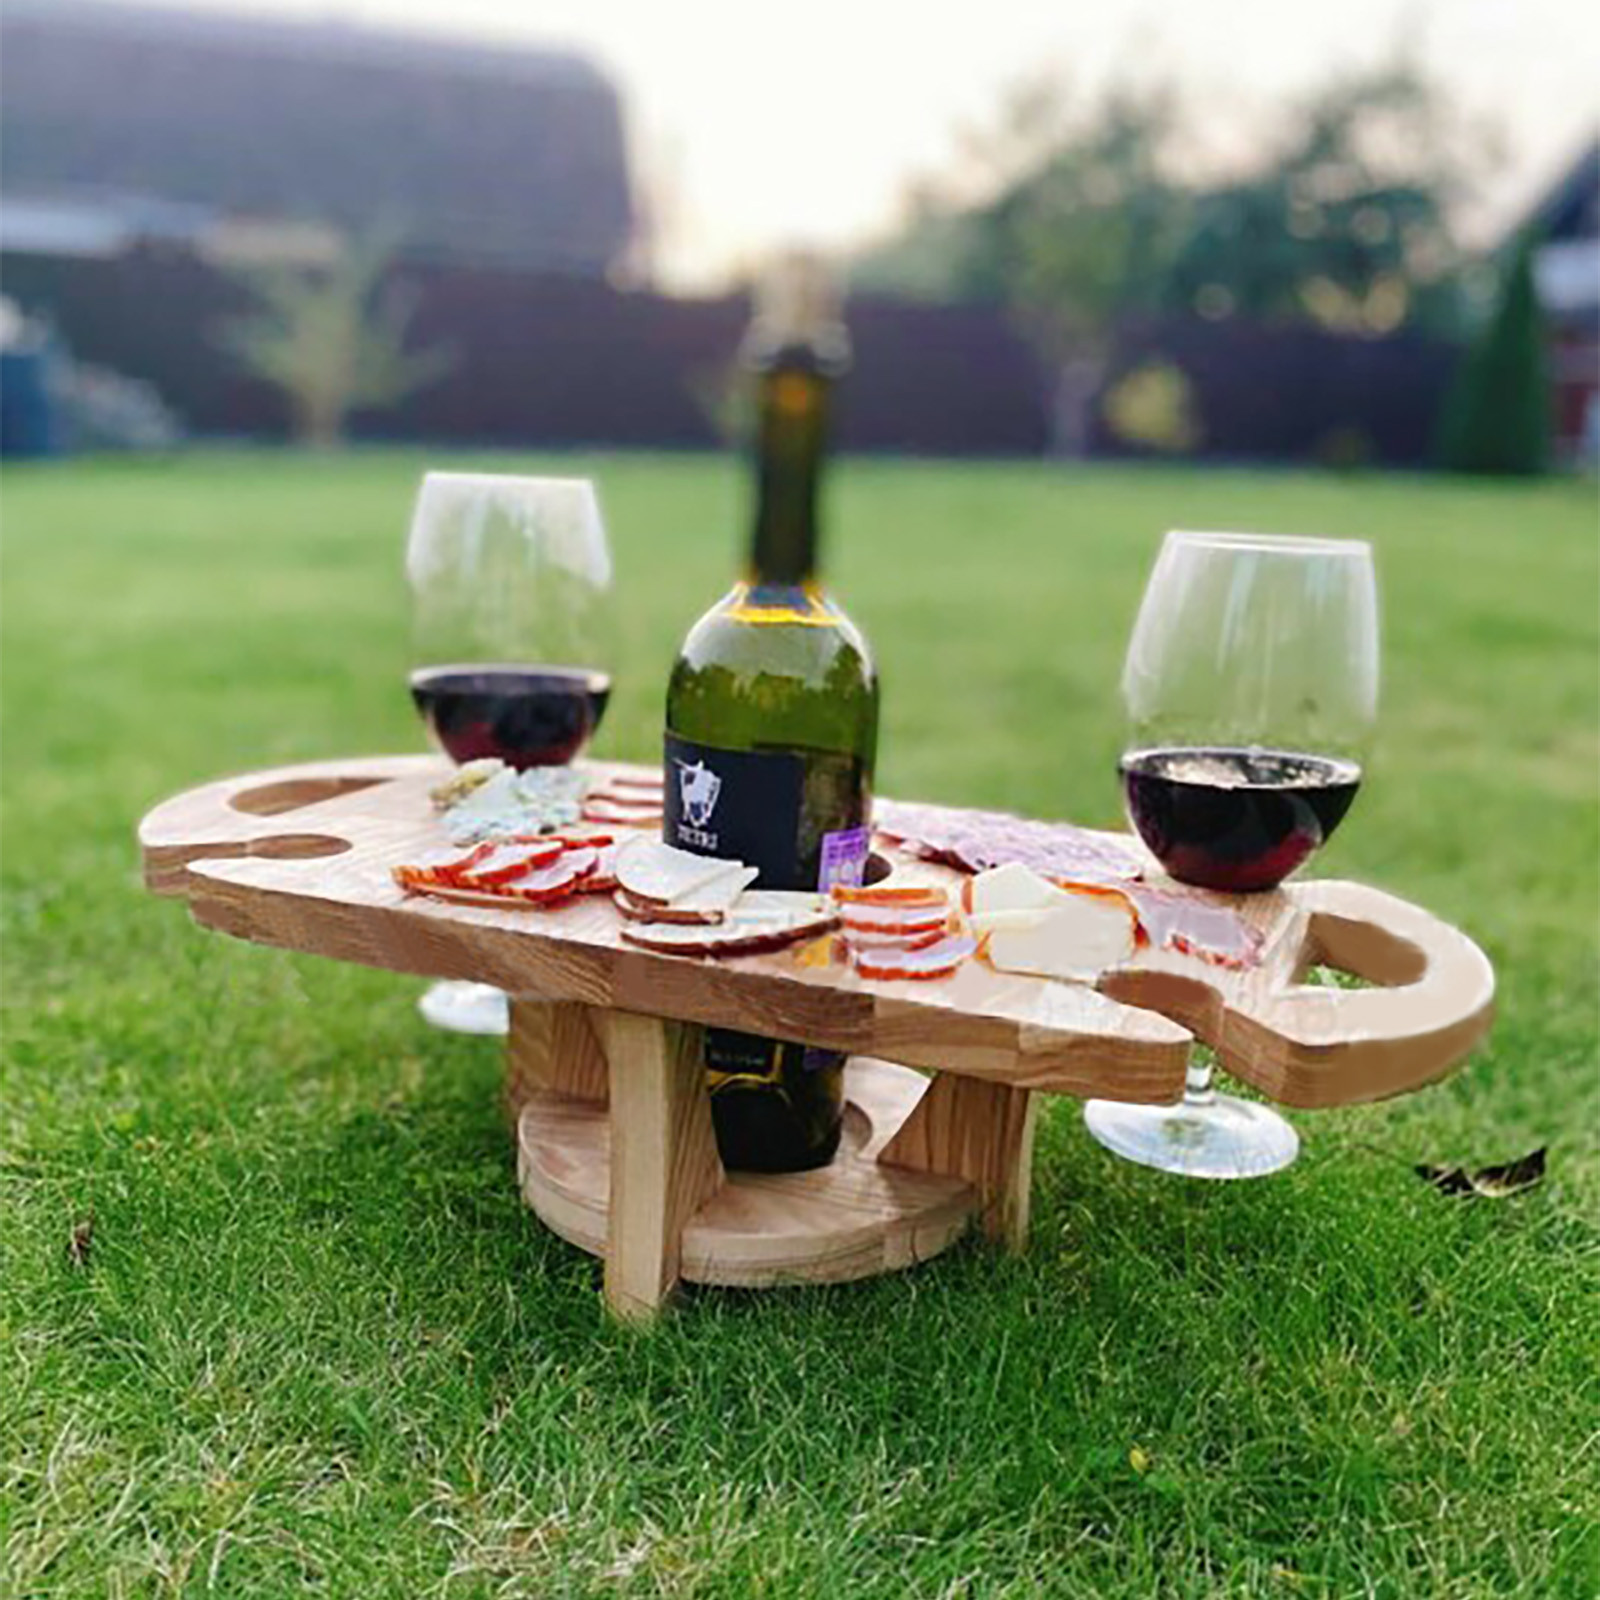 Handmade Wooden Collapsible Picnic Table Outdoor Wine Table Portable Detachable Folding Fruit Table Wine Rack EntertainmentTable